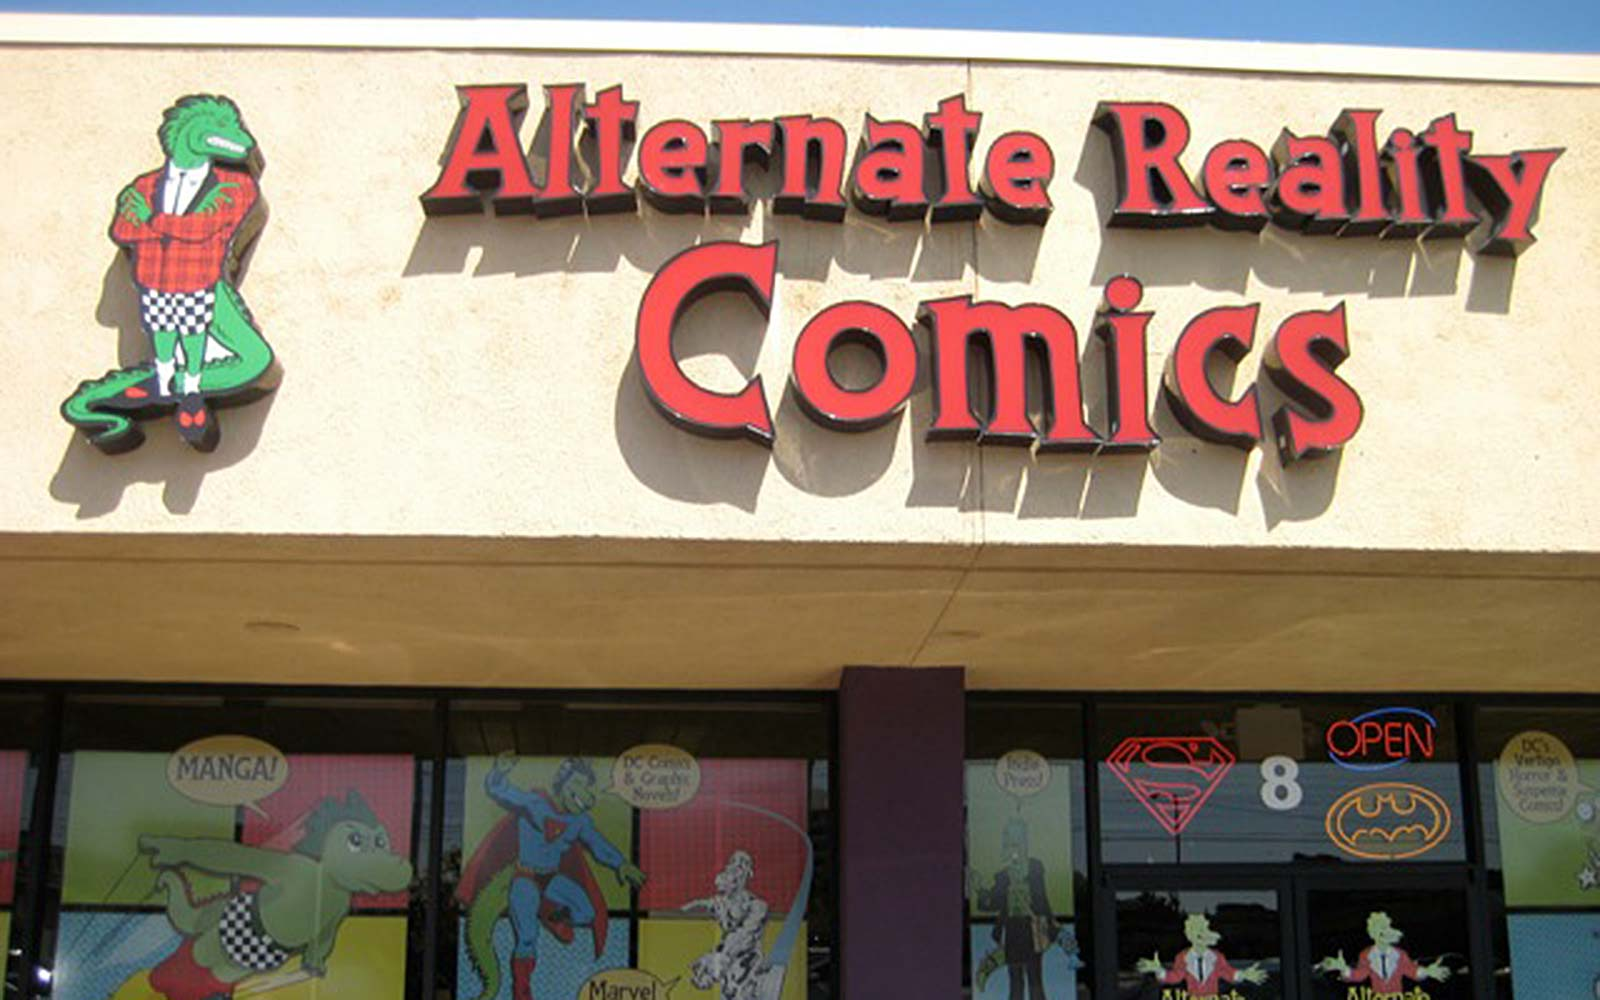 Alternate Reality Comics Las Vegas Nevada